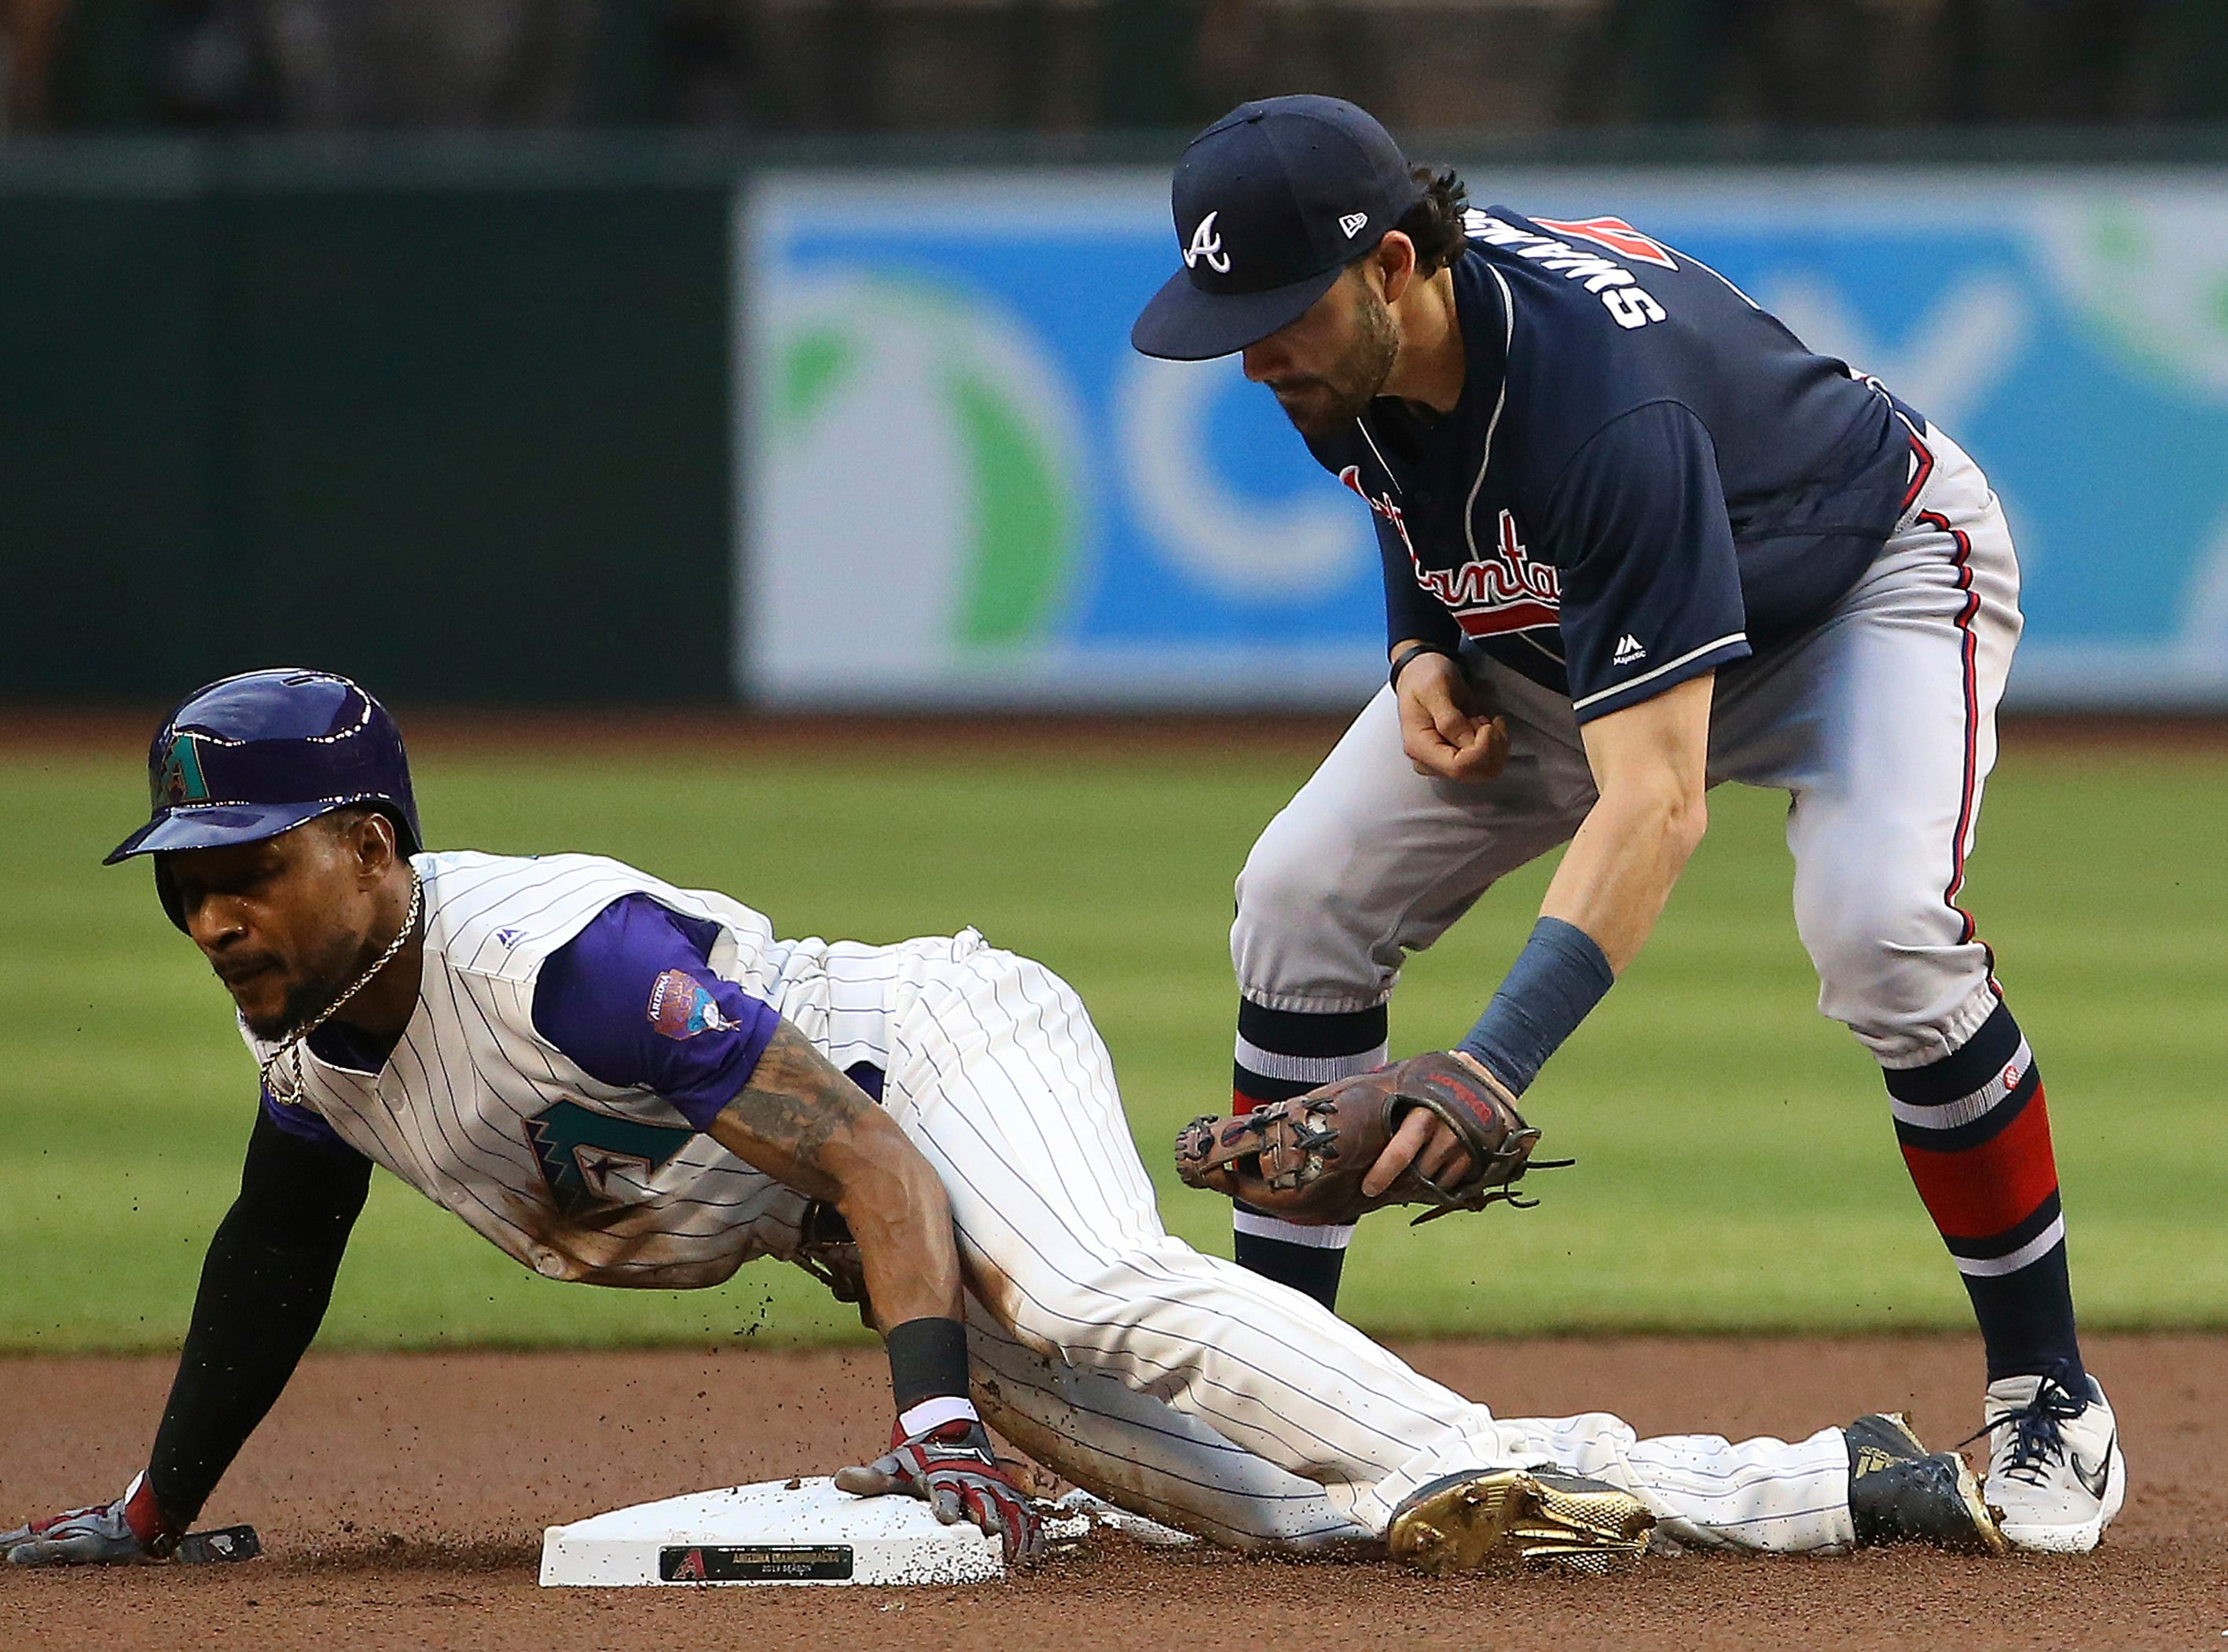 Arizona Diamondbacks' Jarrod Dyson, left, steals second base as Atlanta Braves shortstop Dansby Swanson, right, applies a late tag during the first inning of a baseball game Thursday, May 9, 2019, in Phoenix. (AP Photo/Ross D. Franklin)